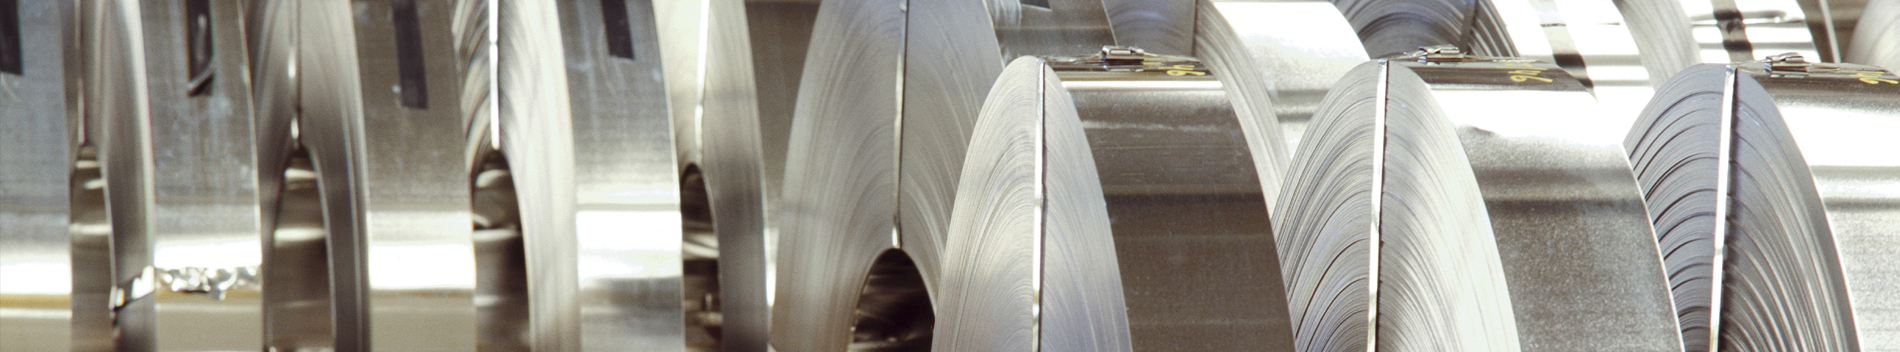 Nickel Alloys, Titanium and Stainless Steels in Water Industry